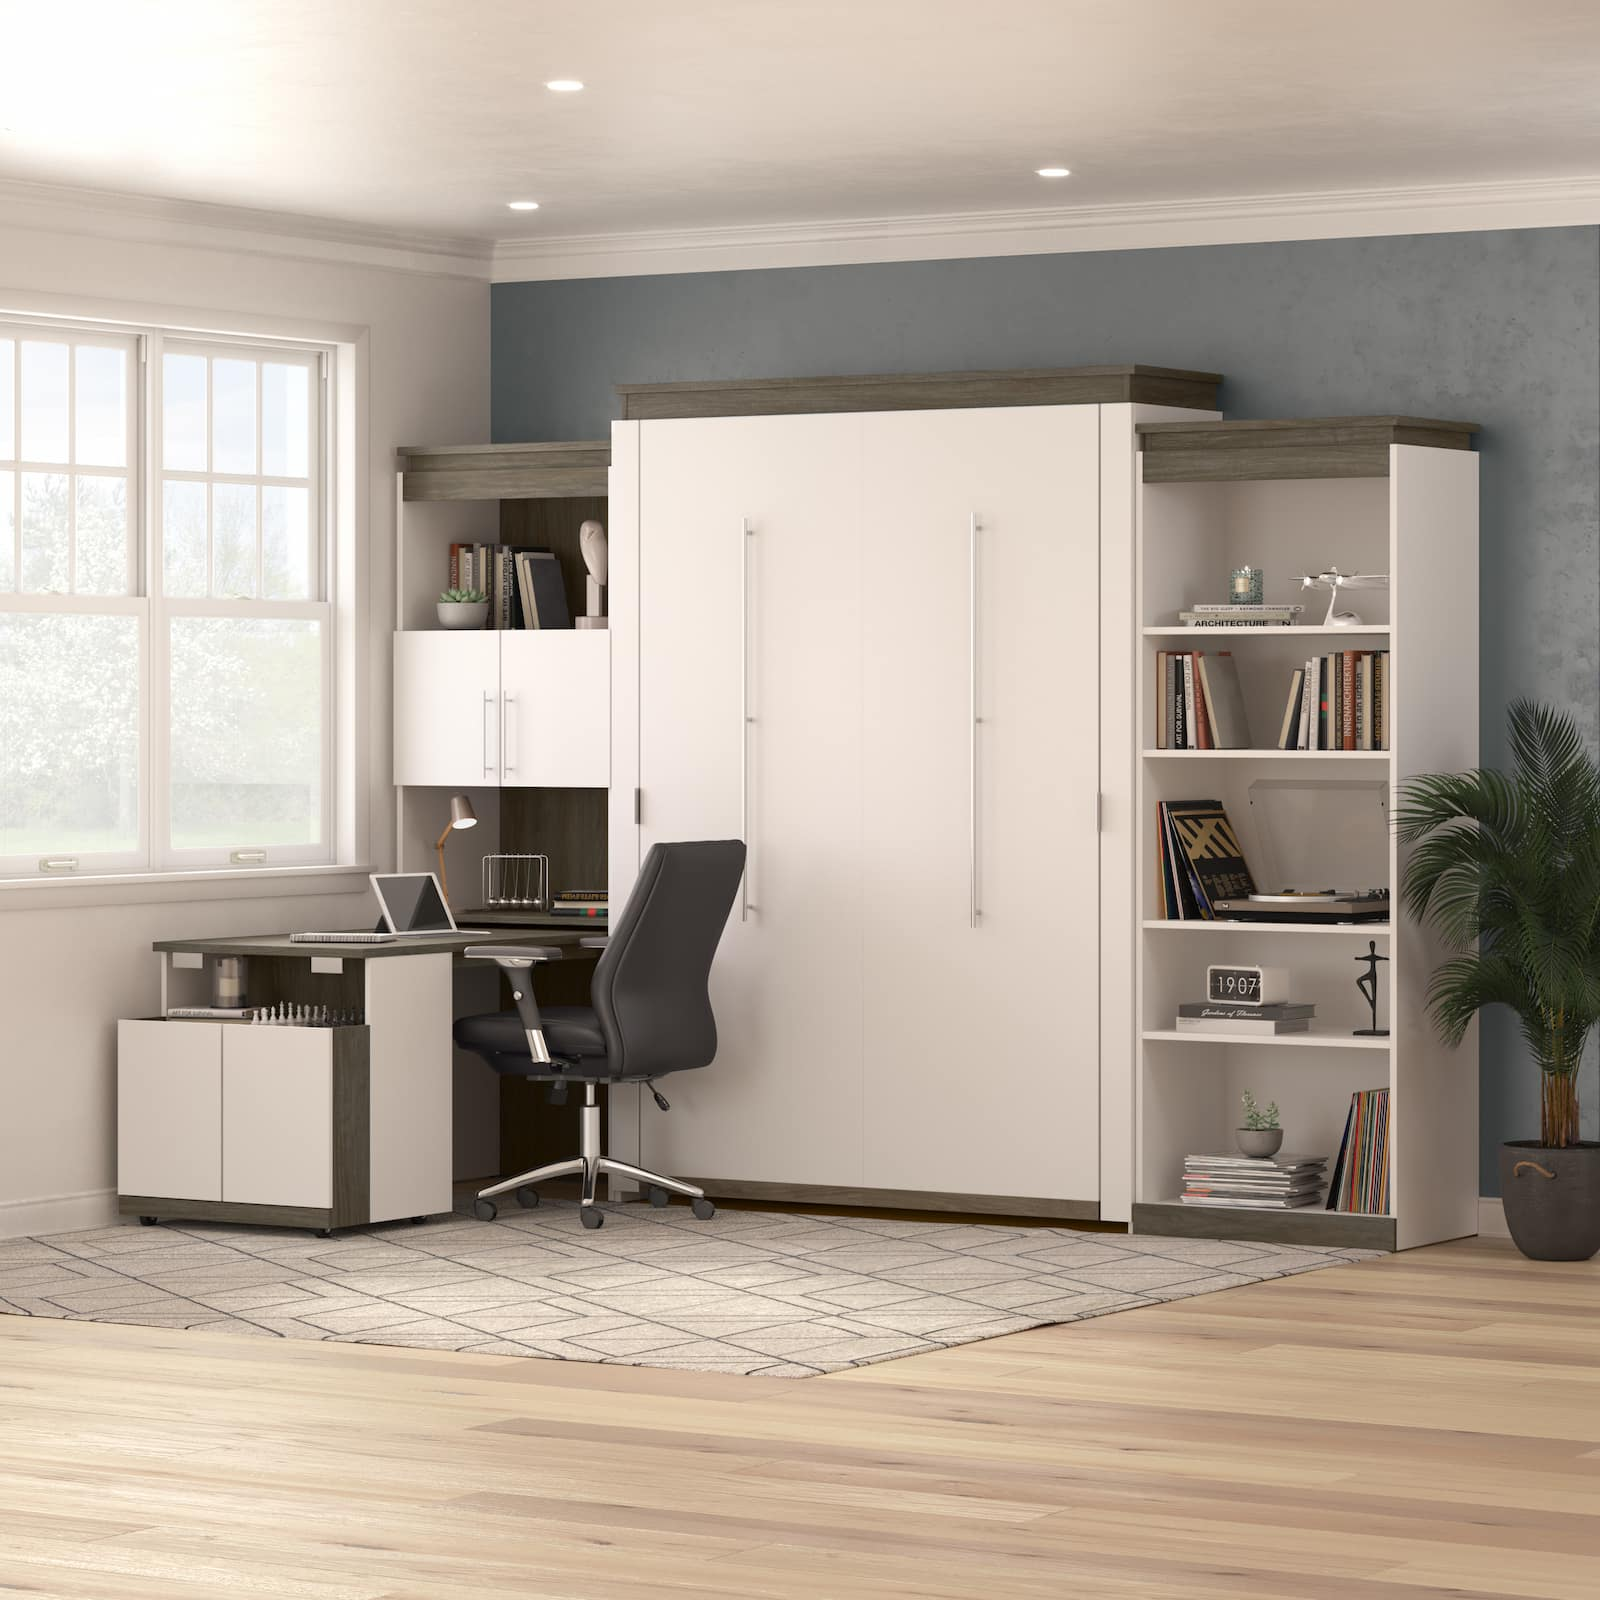 An Inspired Flex Space Begins With A Queen Murphy Bed With a Desk